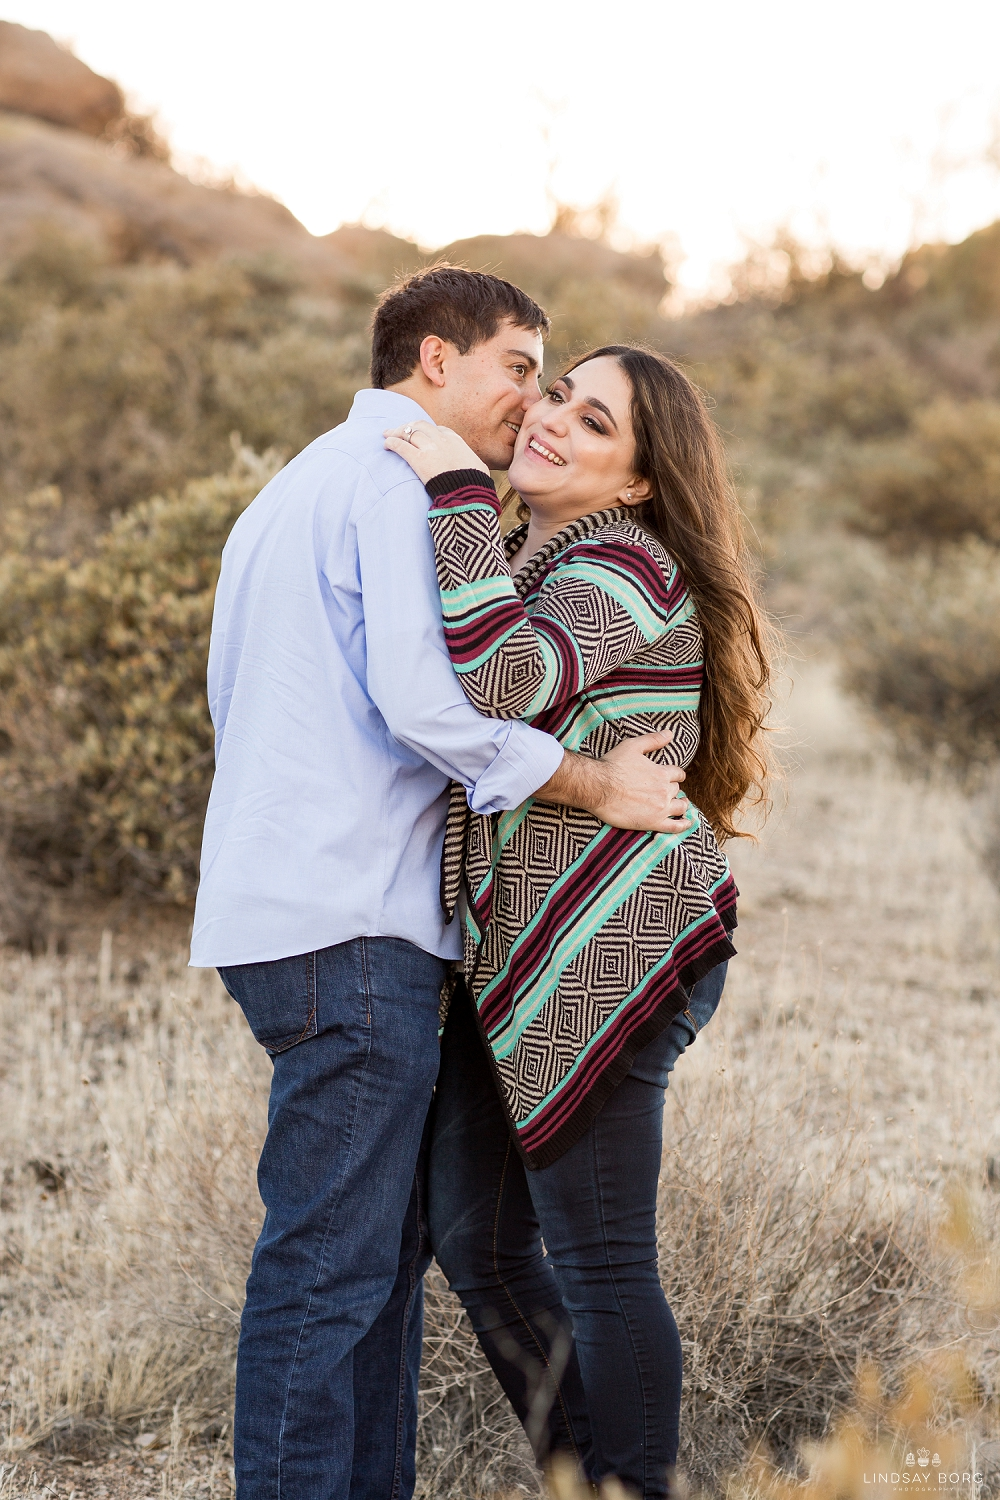 Lindsay-Borg-Photography-arizona-senior-wedding-portrait-photographer-az_2950.jpg